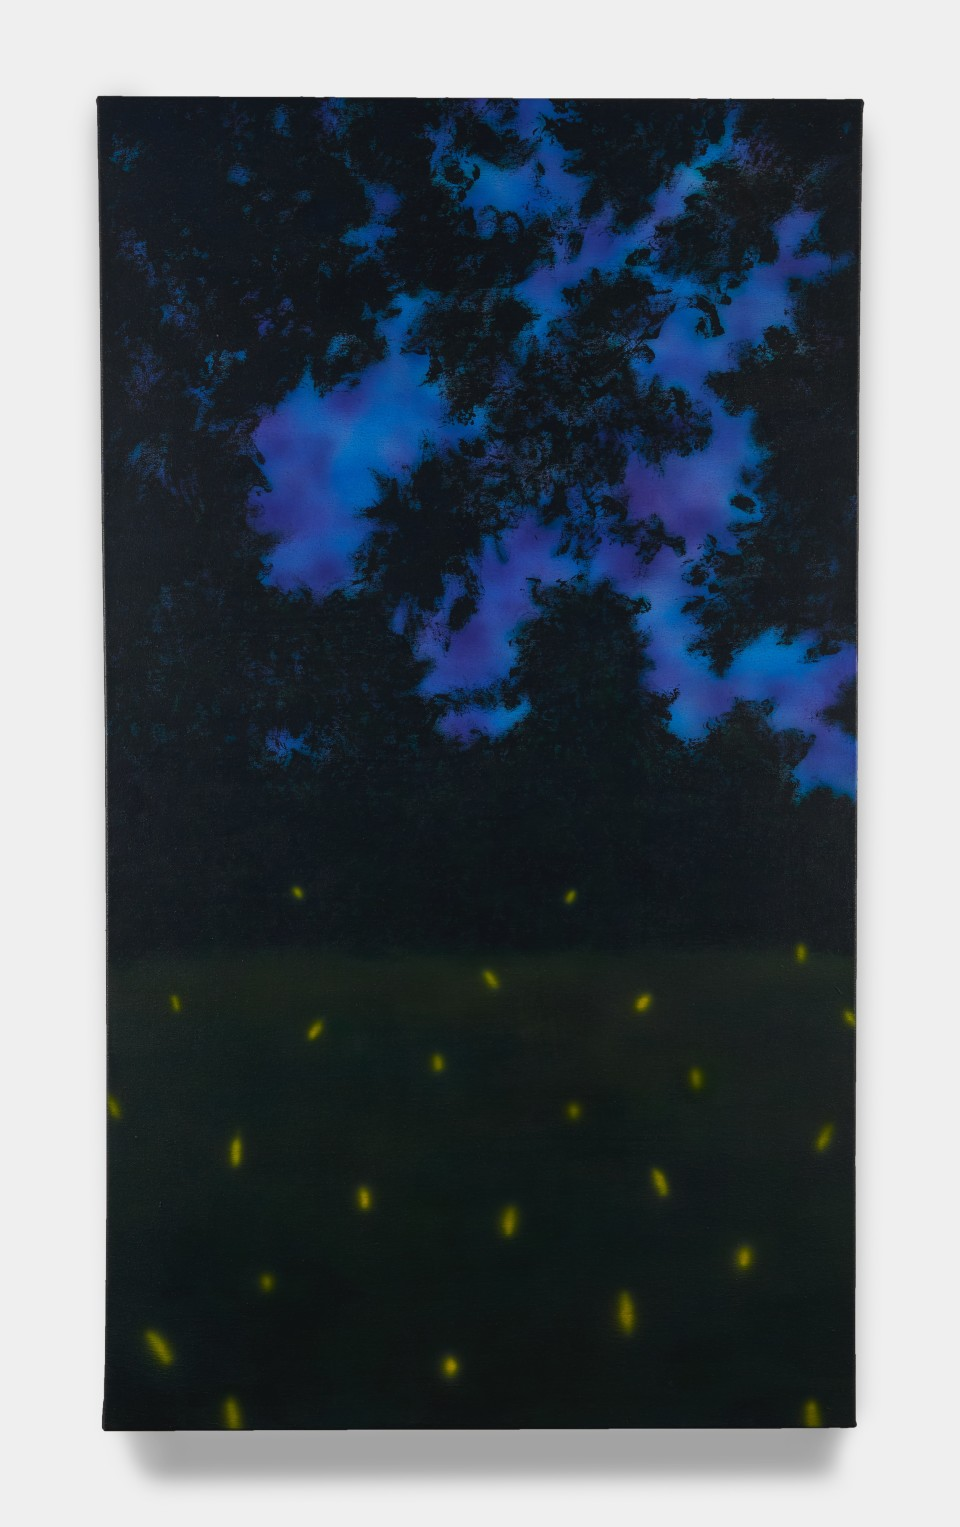 Image: Sung Hwa Kim  Nocturne: Tonight, I'll send you the firefly from that day to near your window, 2020  signed, titled and dated verso  acrylic on canvas  56 x 32 inches (142.2 x 81.3 cm)